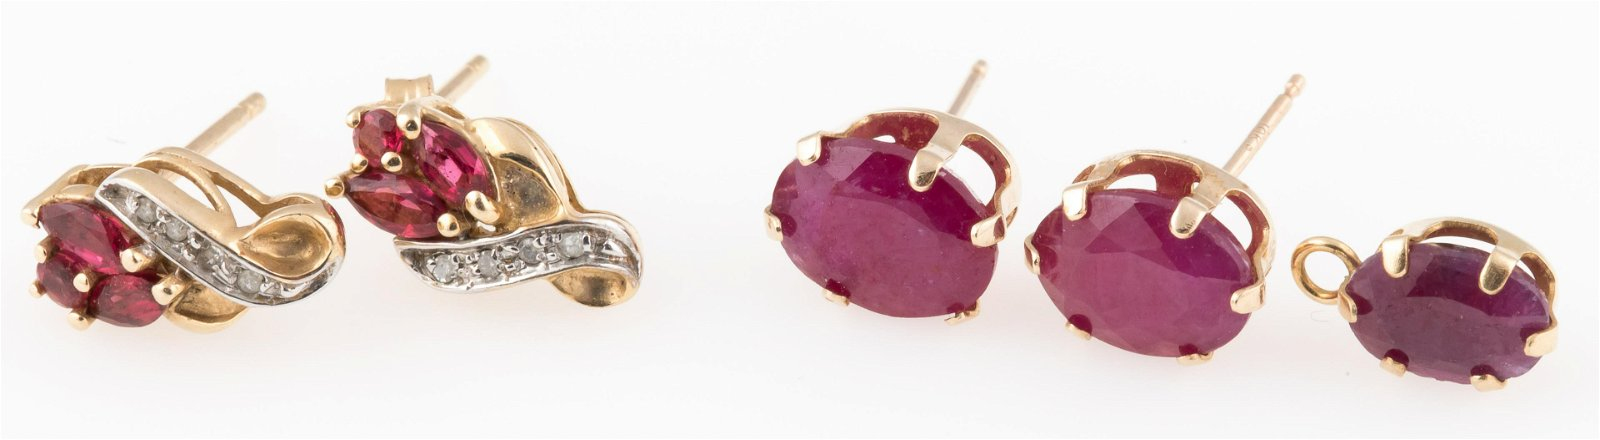 10K GOLD EARRINGS WITH GARNET AND RUBY